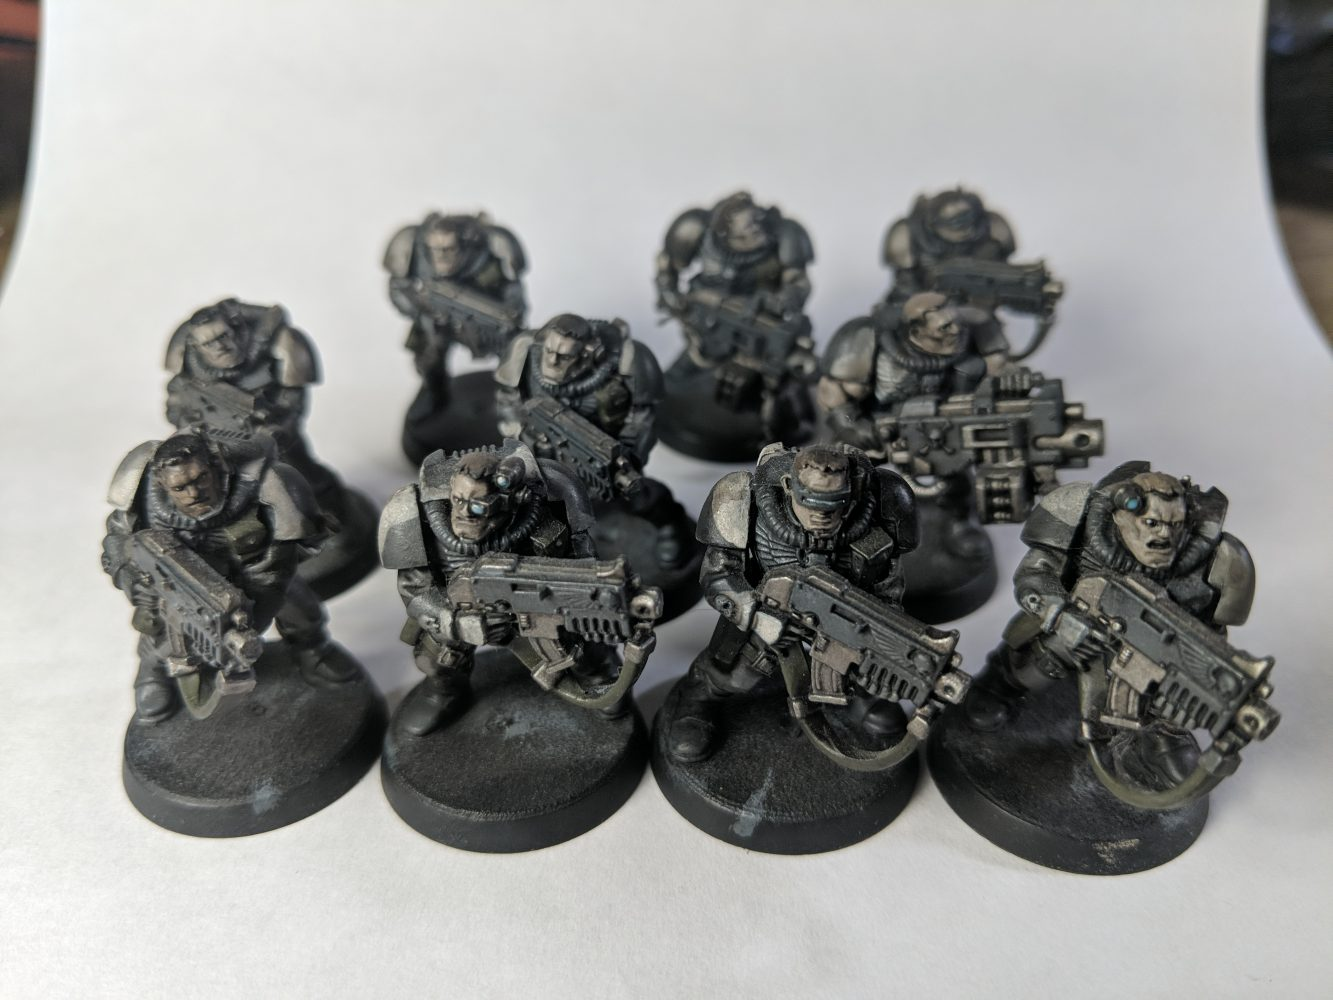 Space Marine scouts in grey and white camo scheme.